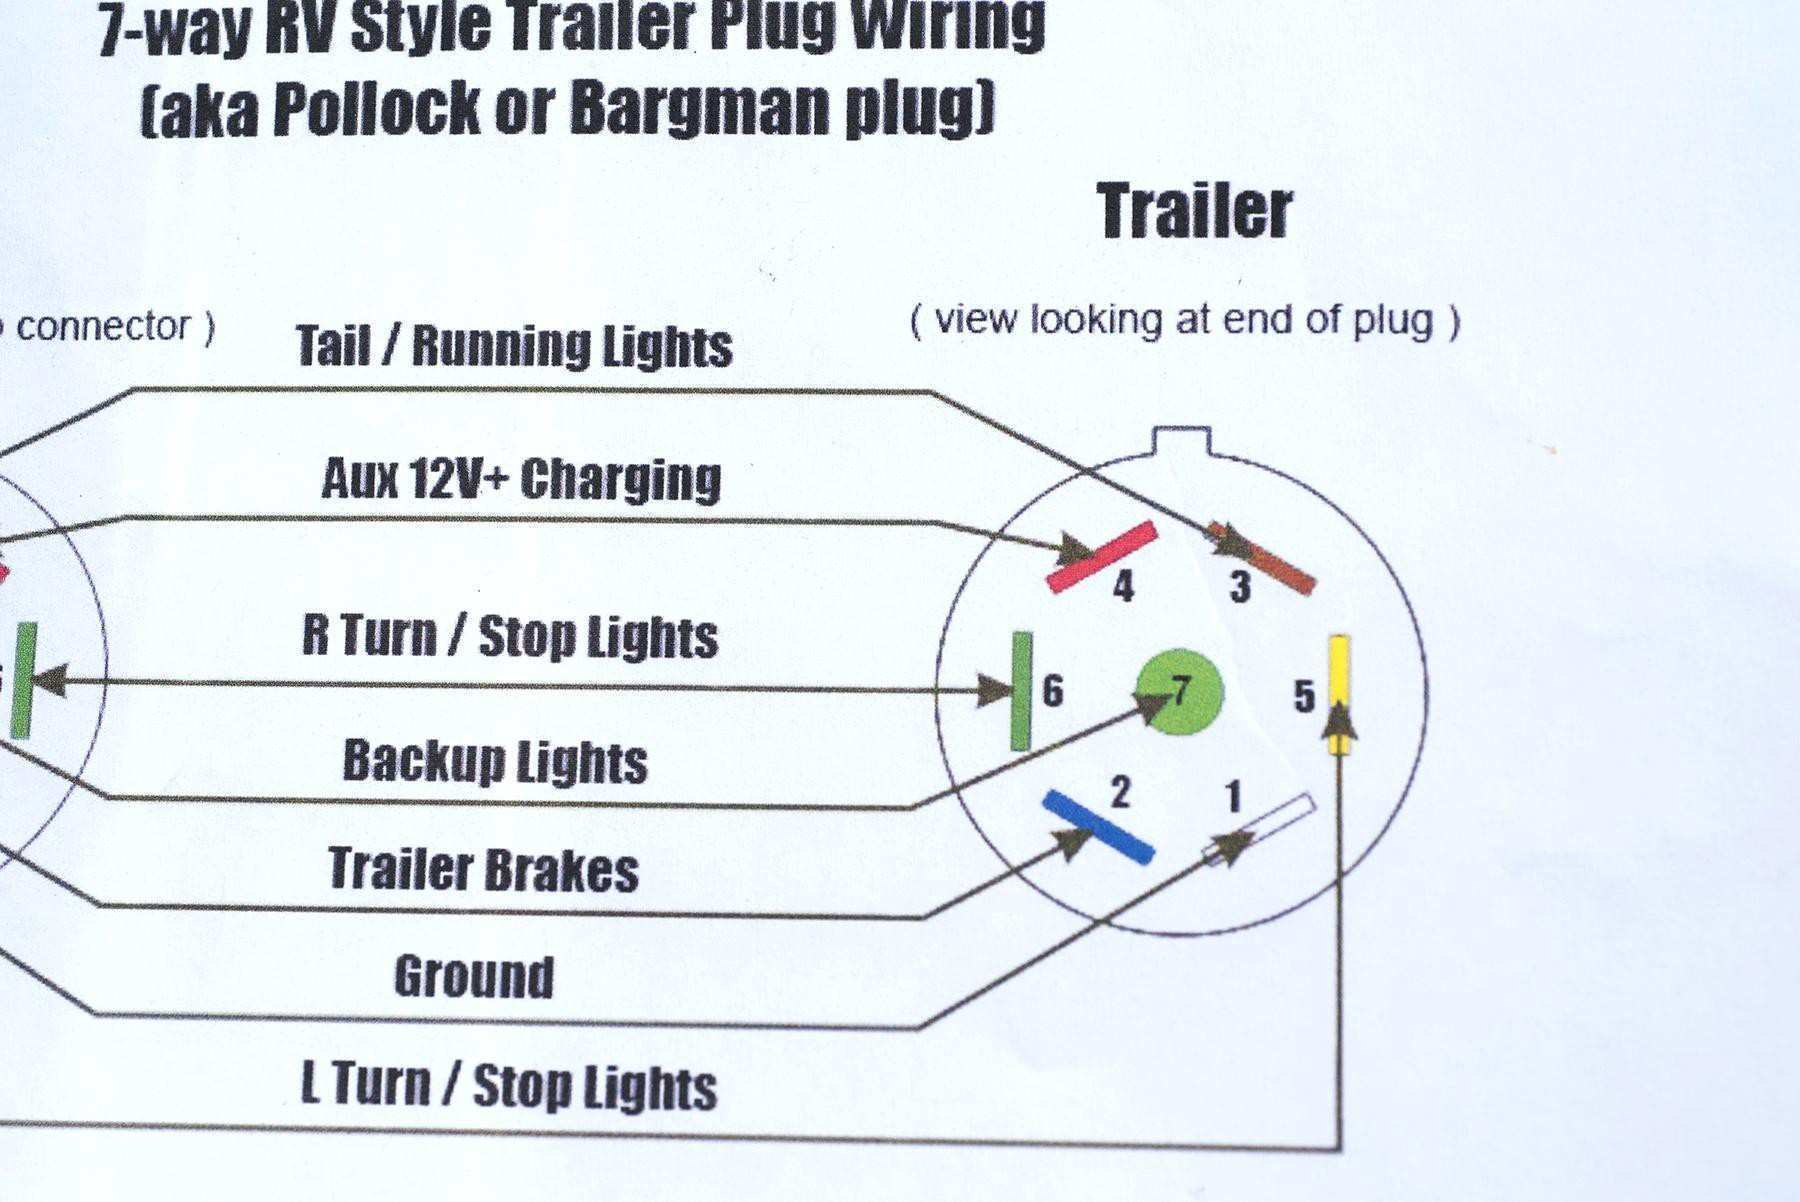 Class 8 Trailer Wiring Diagram | Wiring Library - Class 8 Trailer Wiring Diagram